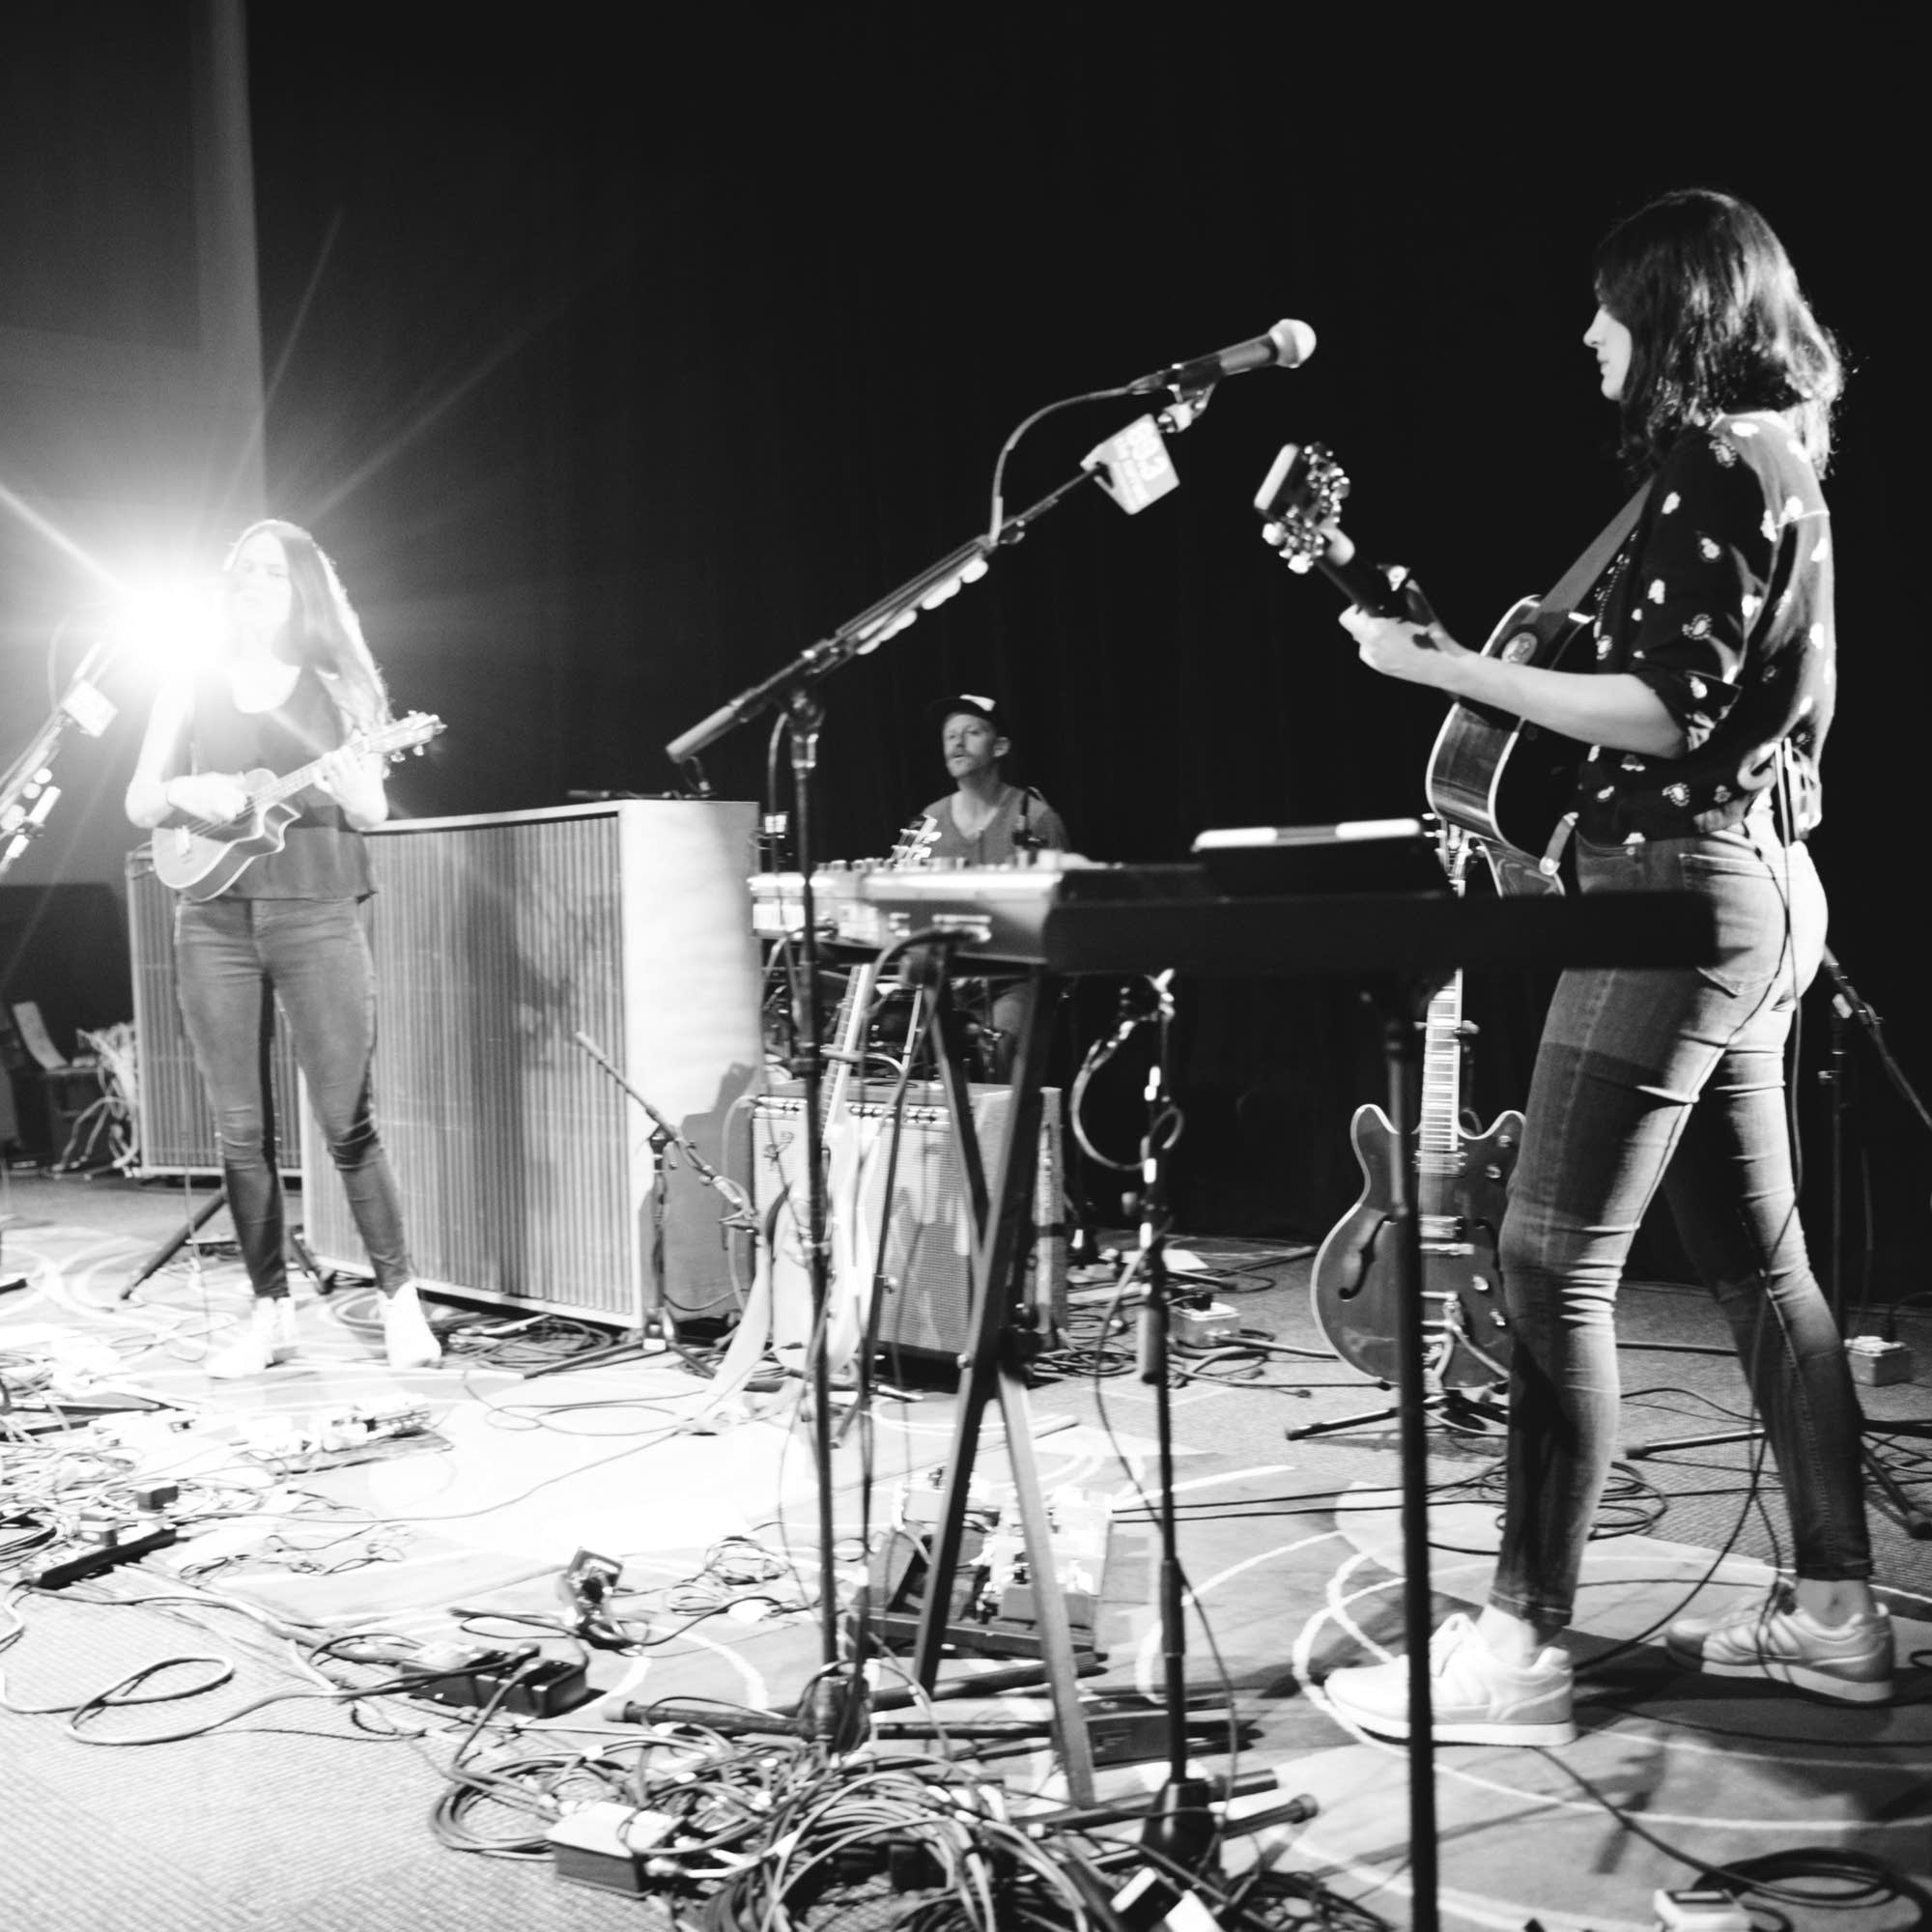 The Staves - Forum - 1